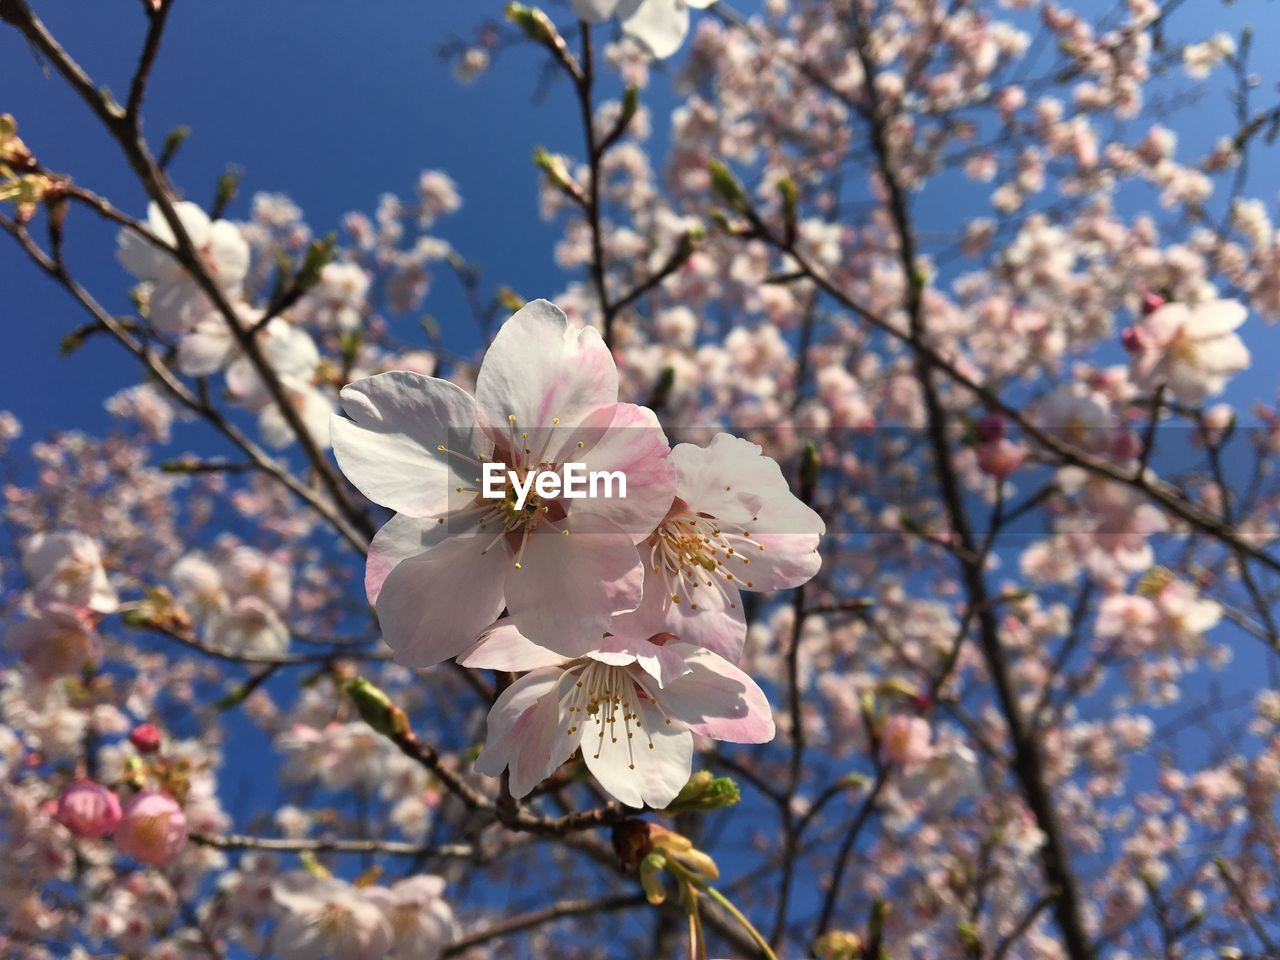 flowering plant, flower, plant, fragility, freshness, beauty in nature, growth, vulnerability, blossom, springtime, tree, branch, cherry blossom, petal, close-up, nature, low angle view, day, focus on foreground, twig, flower head, pink color, cherry tree, no people, pollen, outdoors, plum blossom, spring